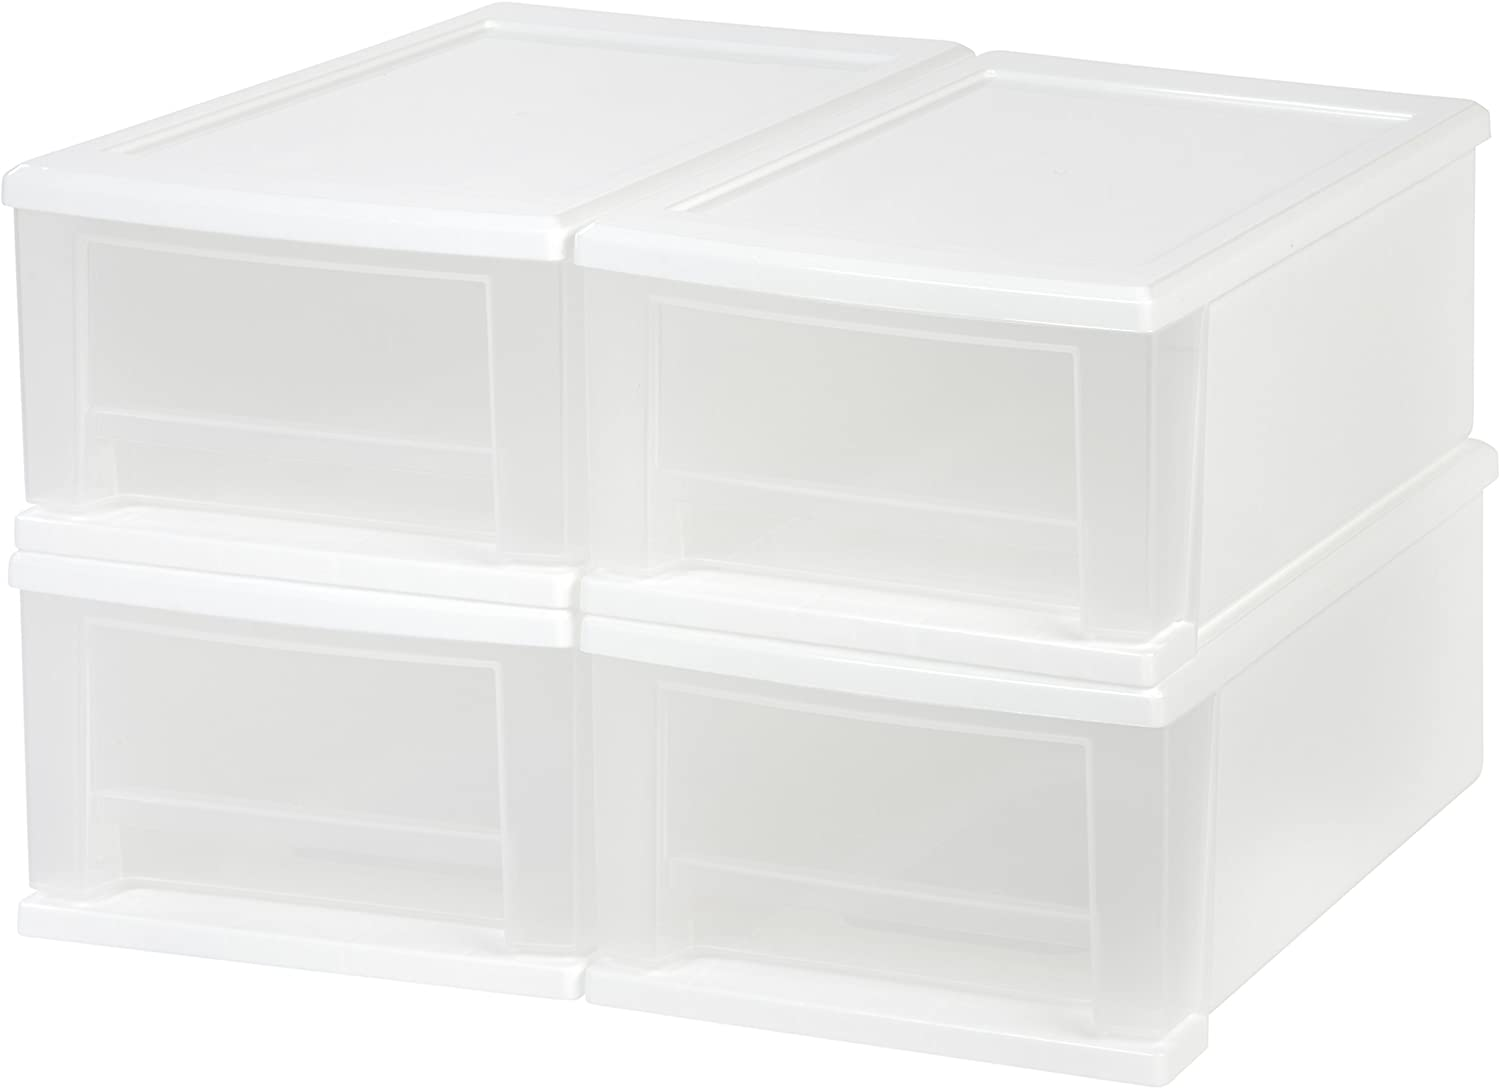 IRIS 7 Quart Stacking Drawer, 4 Pack, White